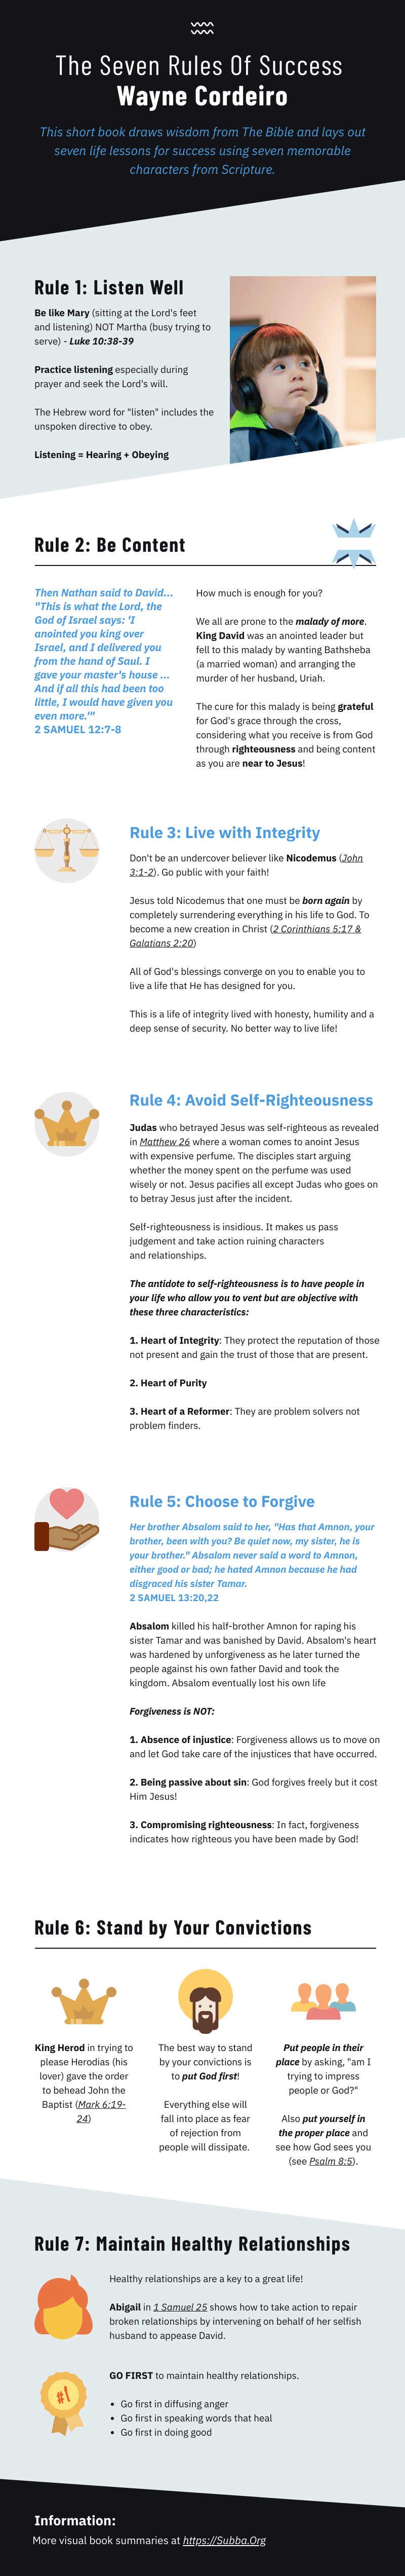 Book Summary of The Seven Rules Of Success By Wayne Cordeiro